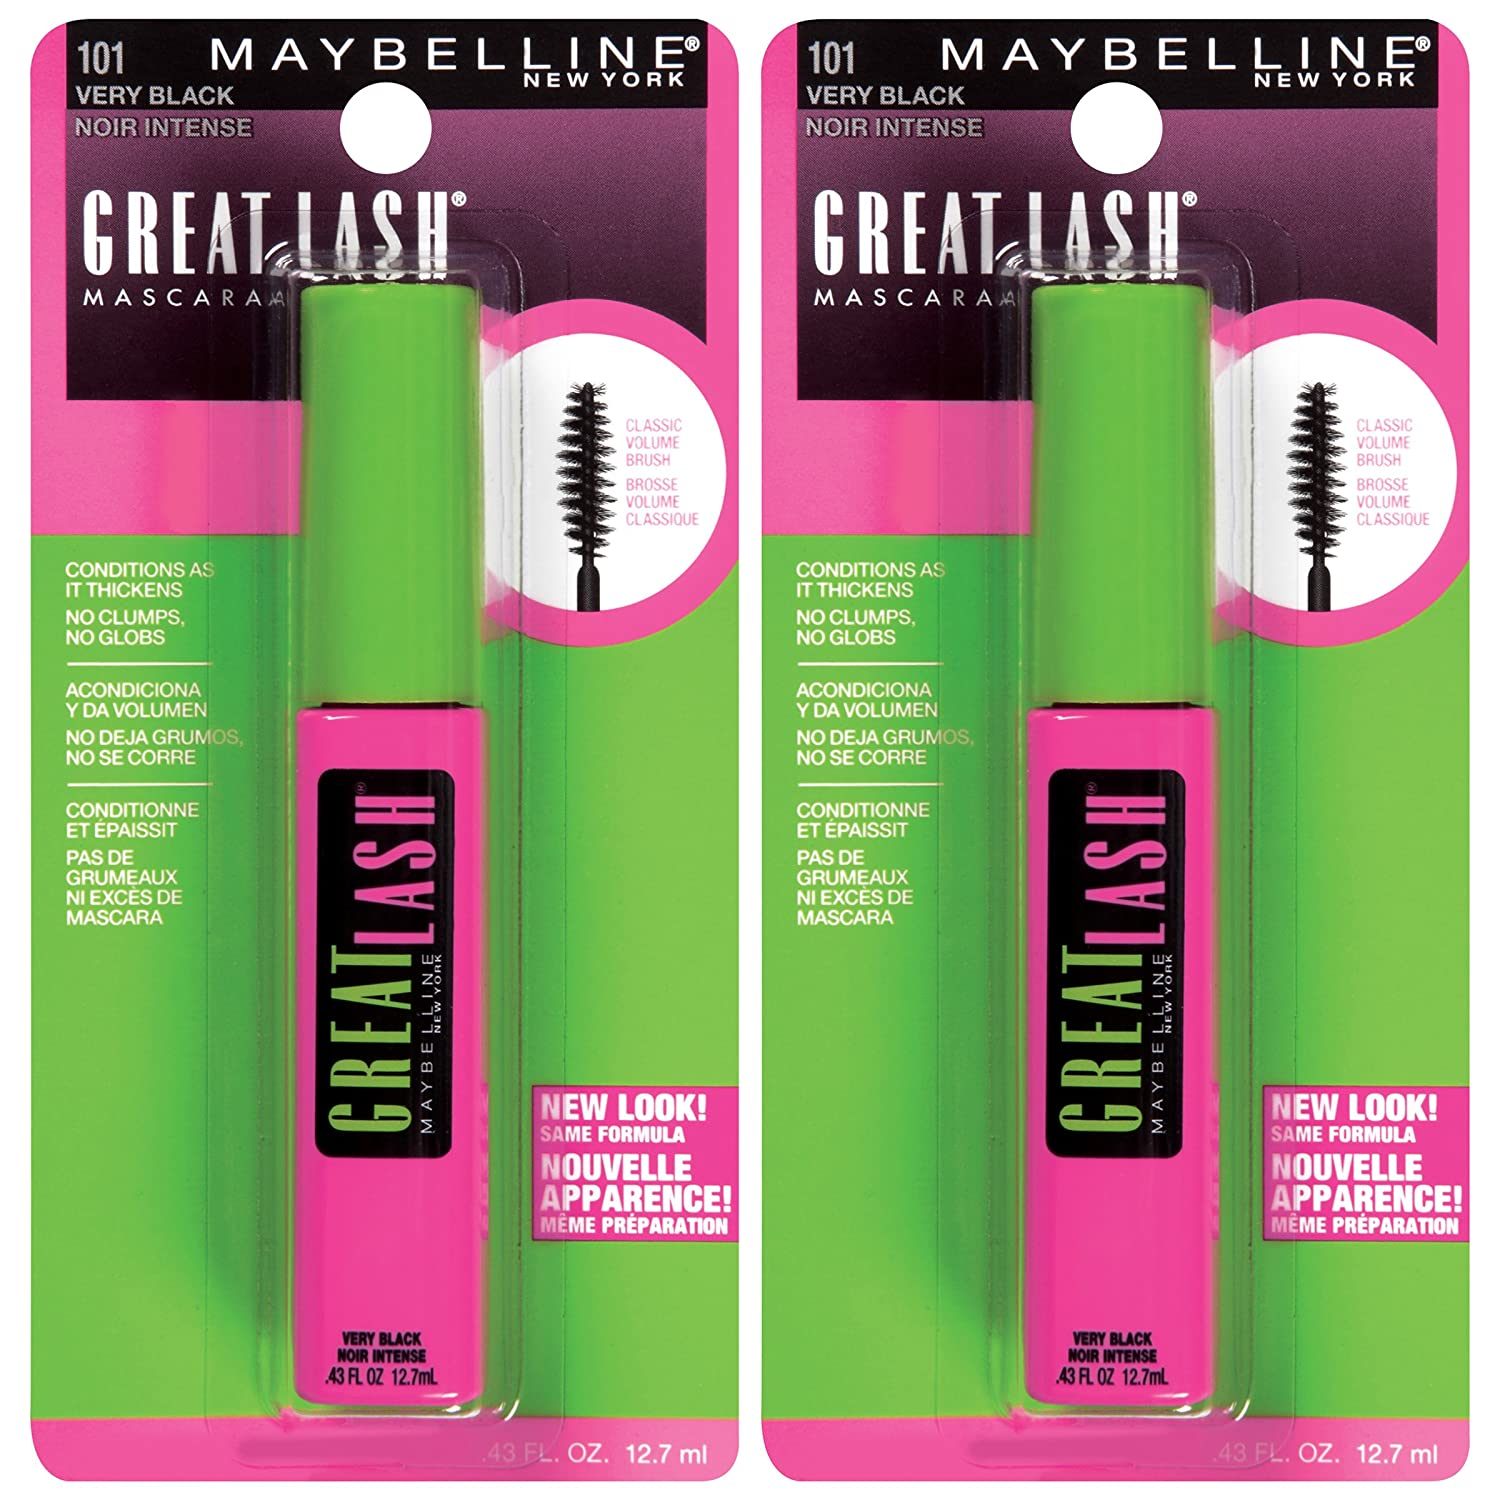 ed50f147627 Buy Maybelline New York Great Lash Washable Mascara Makeup, Very Black, 2  Count Online at Low Prices in India - Amazon.in